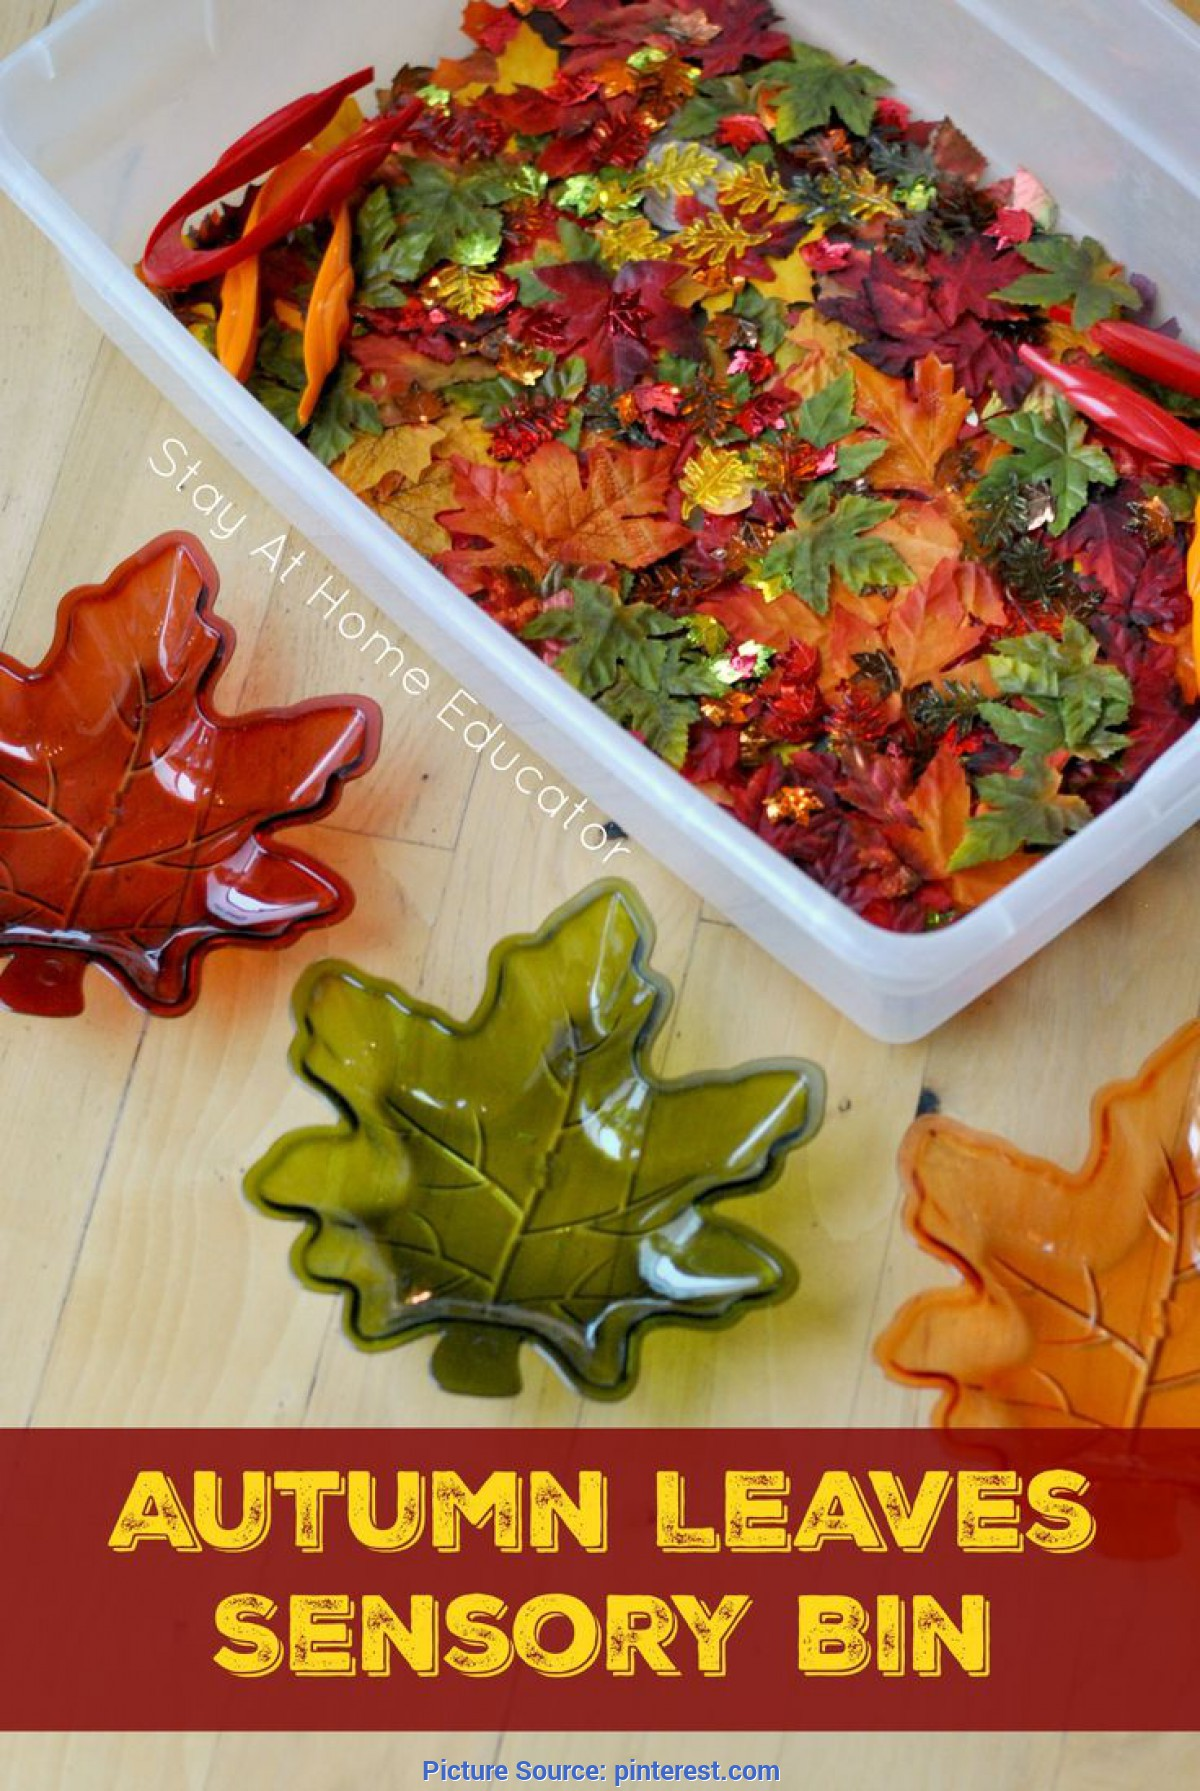 Typical Autumn Leaves Activities Autumn Leaves Sensory Bin   Activities, Leaves And Au